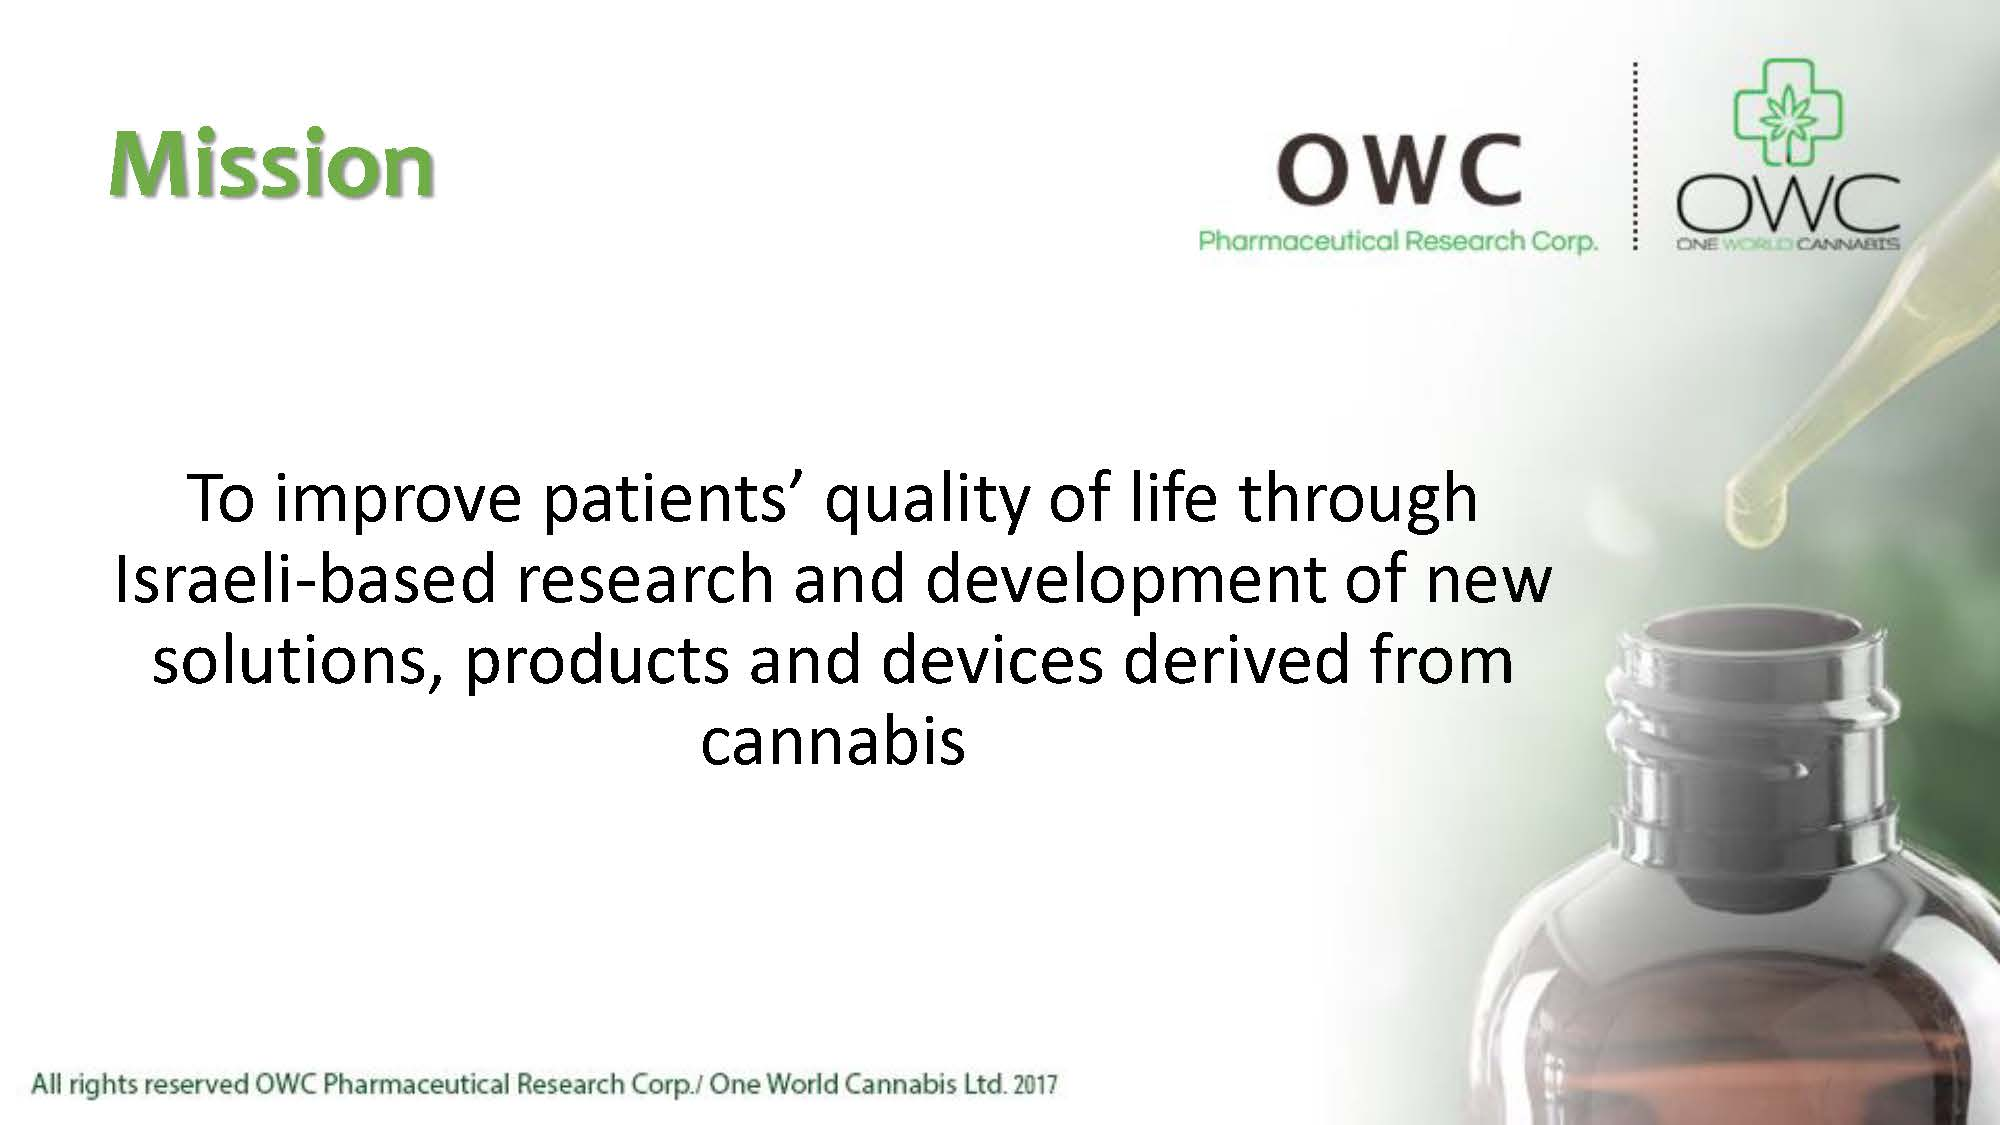 Owc pharmaceutical research corp owcp stock message board download here biocorpaavc Image collections